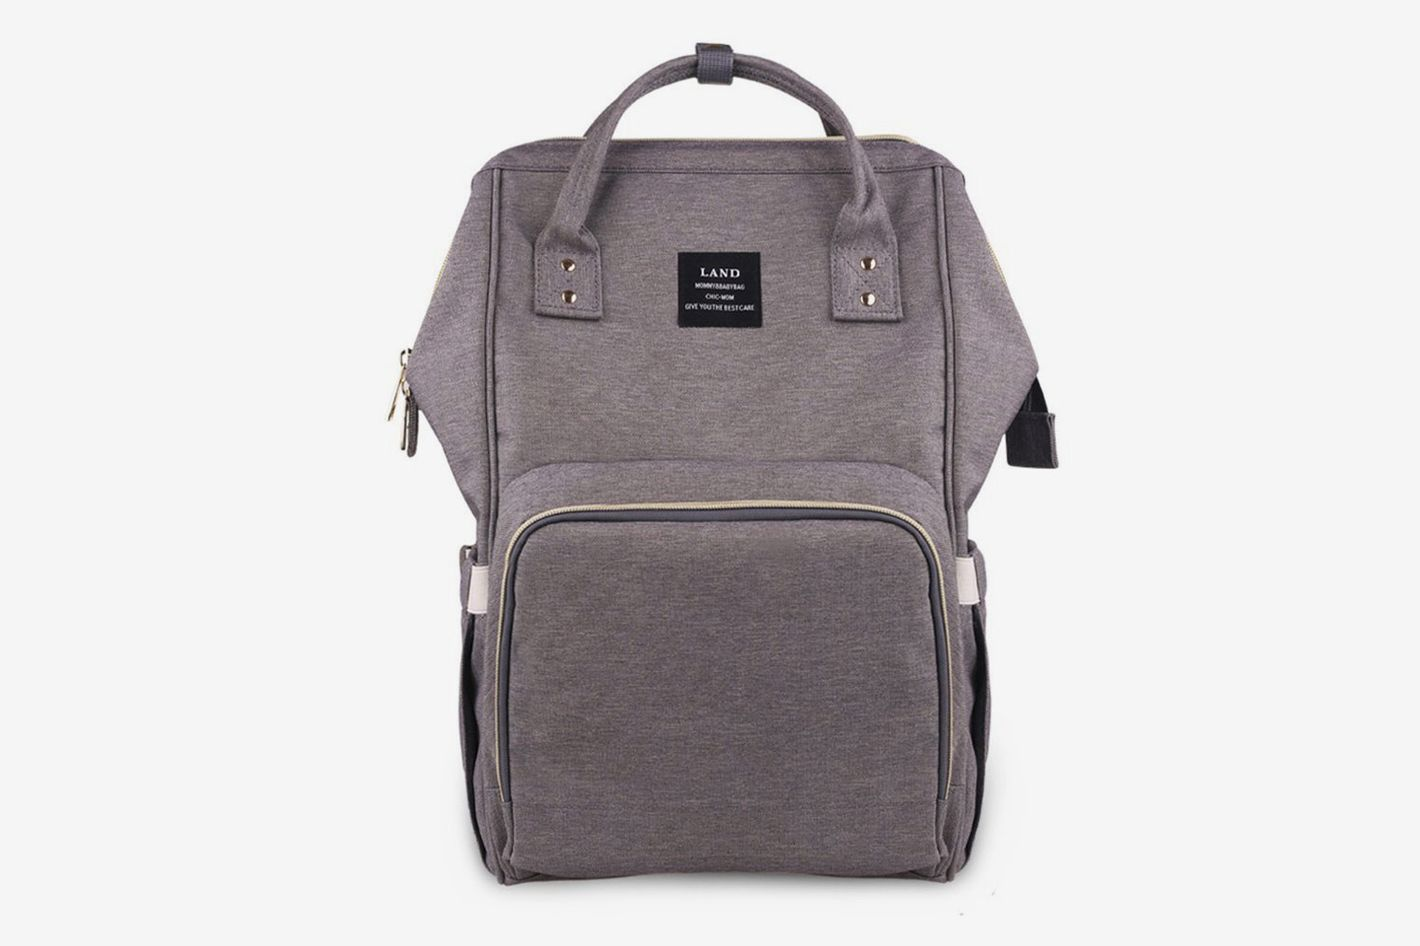 Land Diaper Bag in Gray